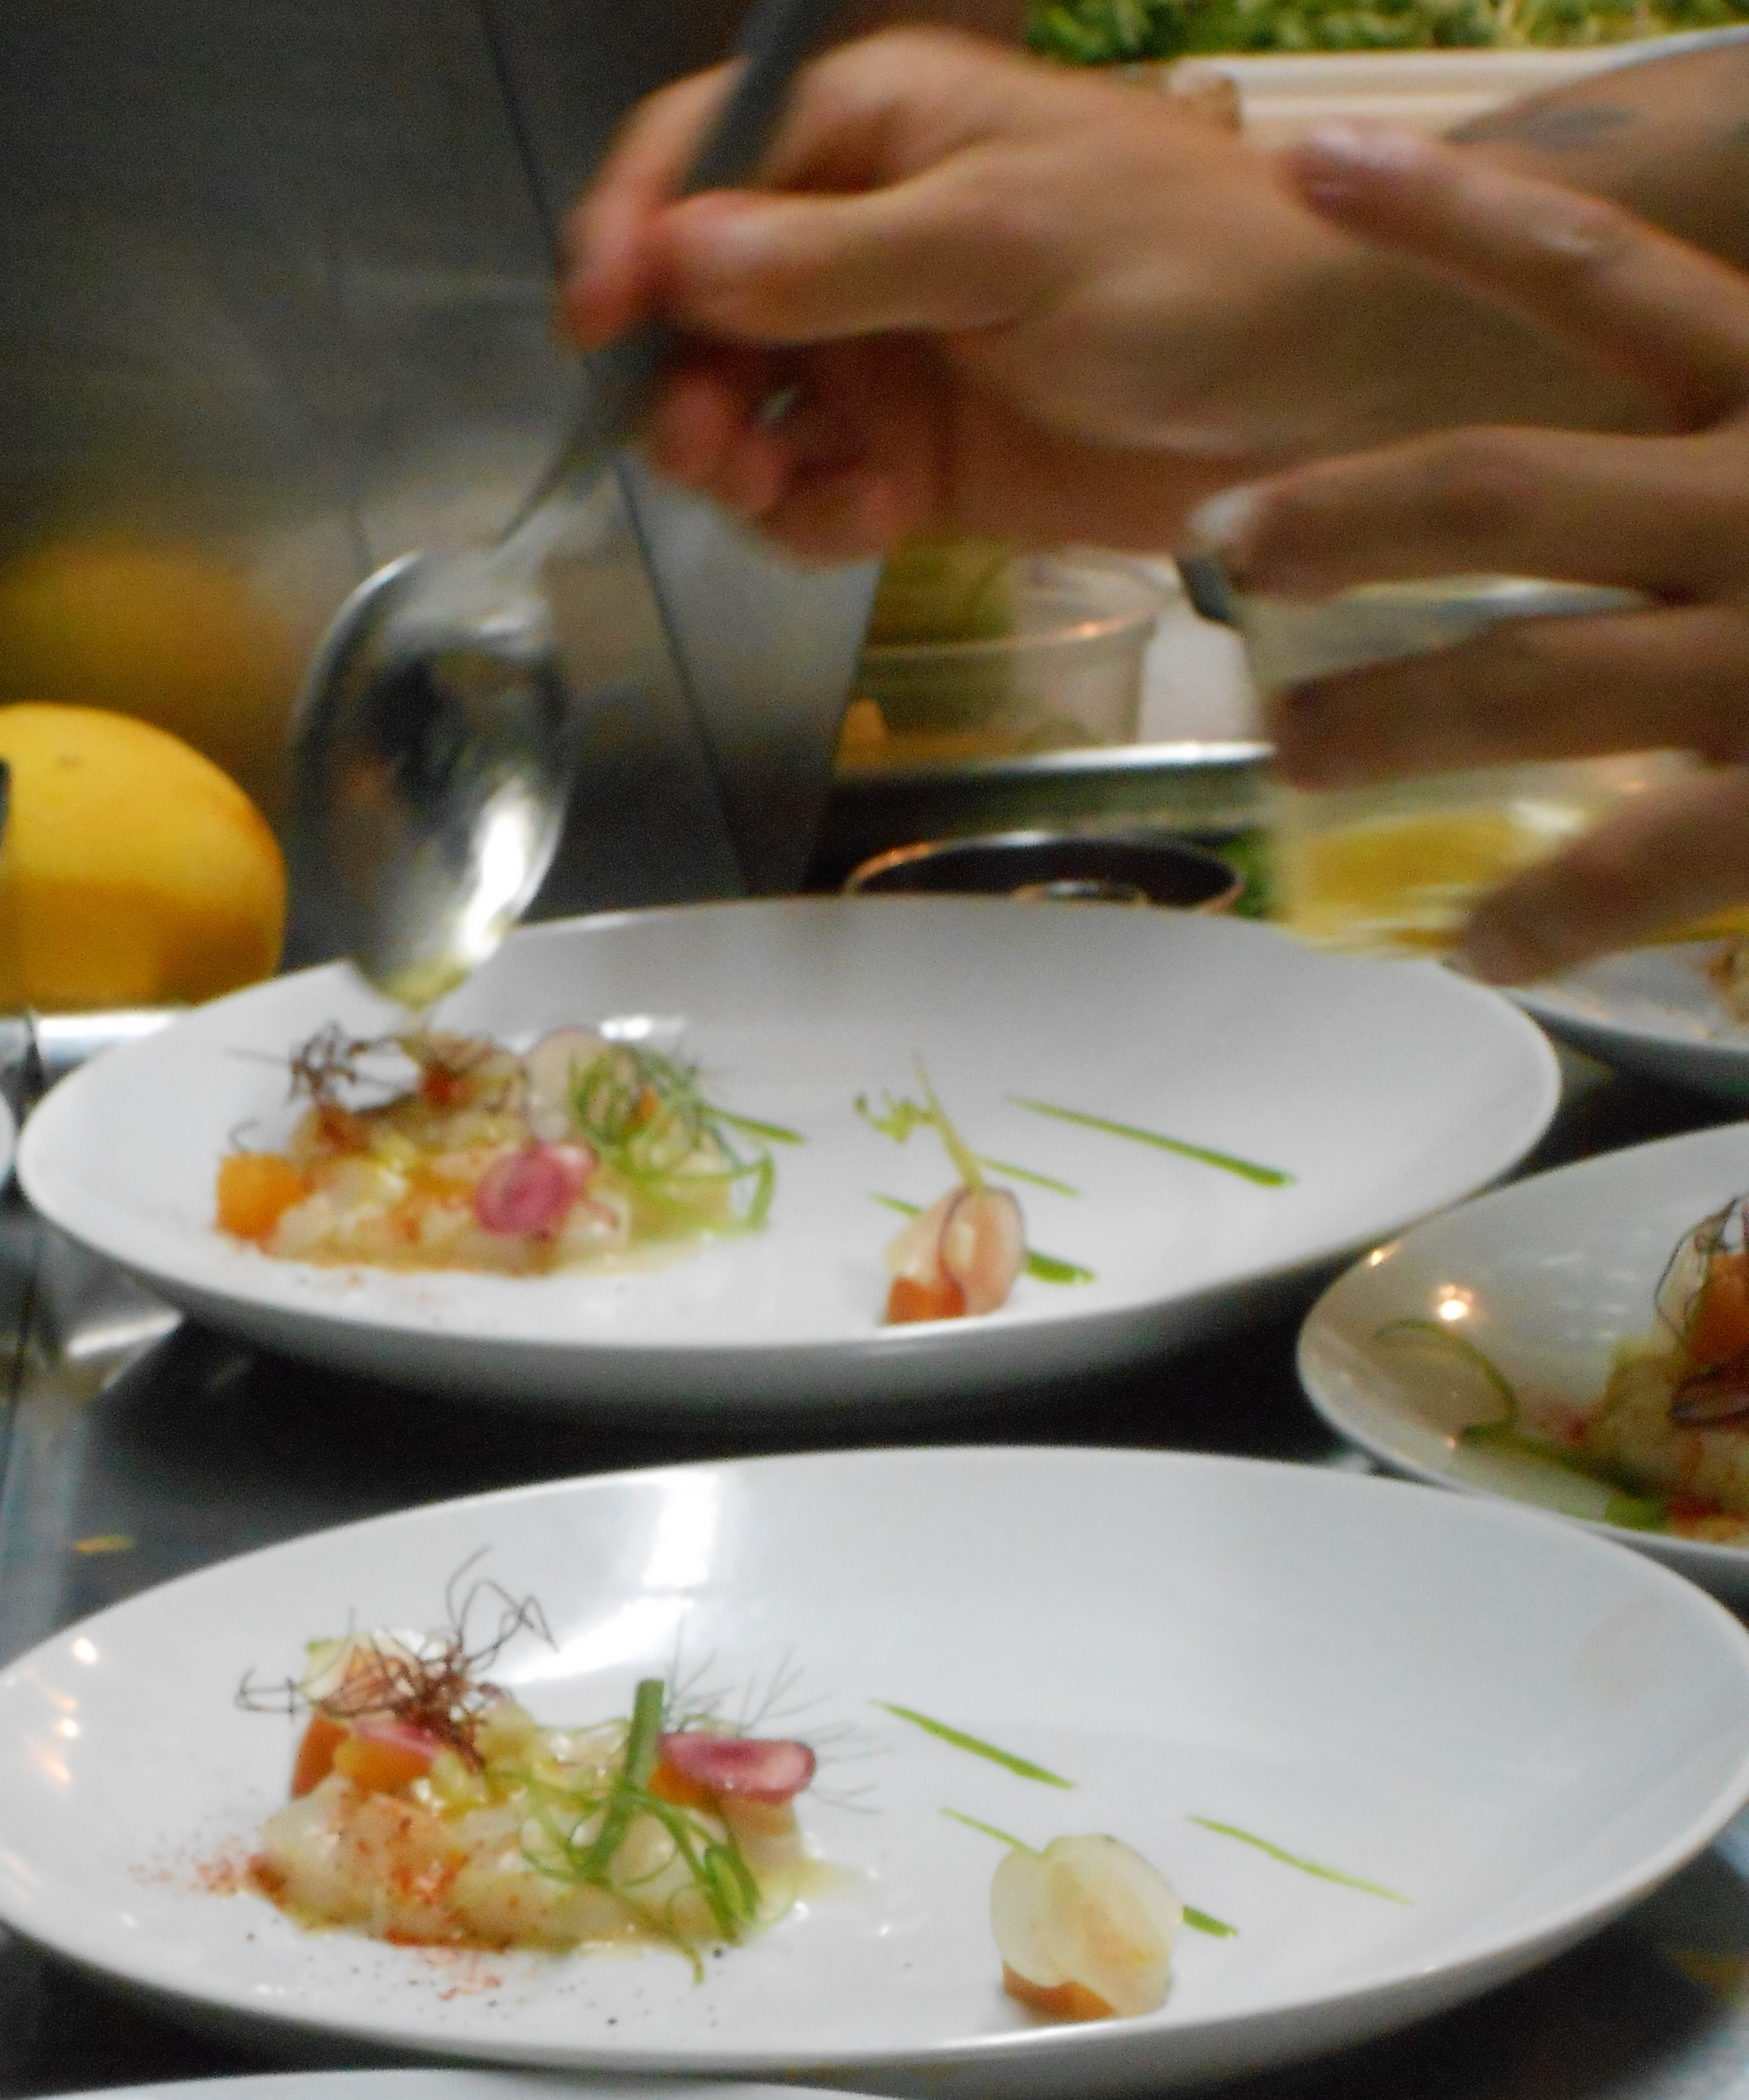 Chefs add colors and flavors to the scallop dish